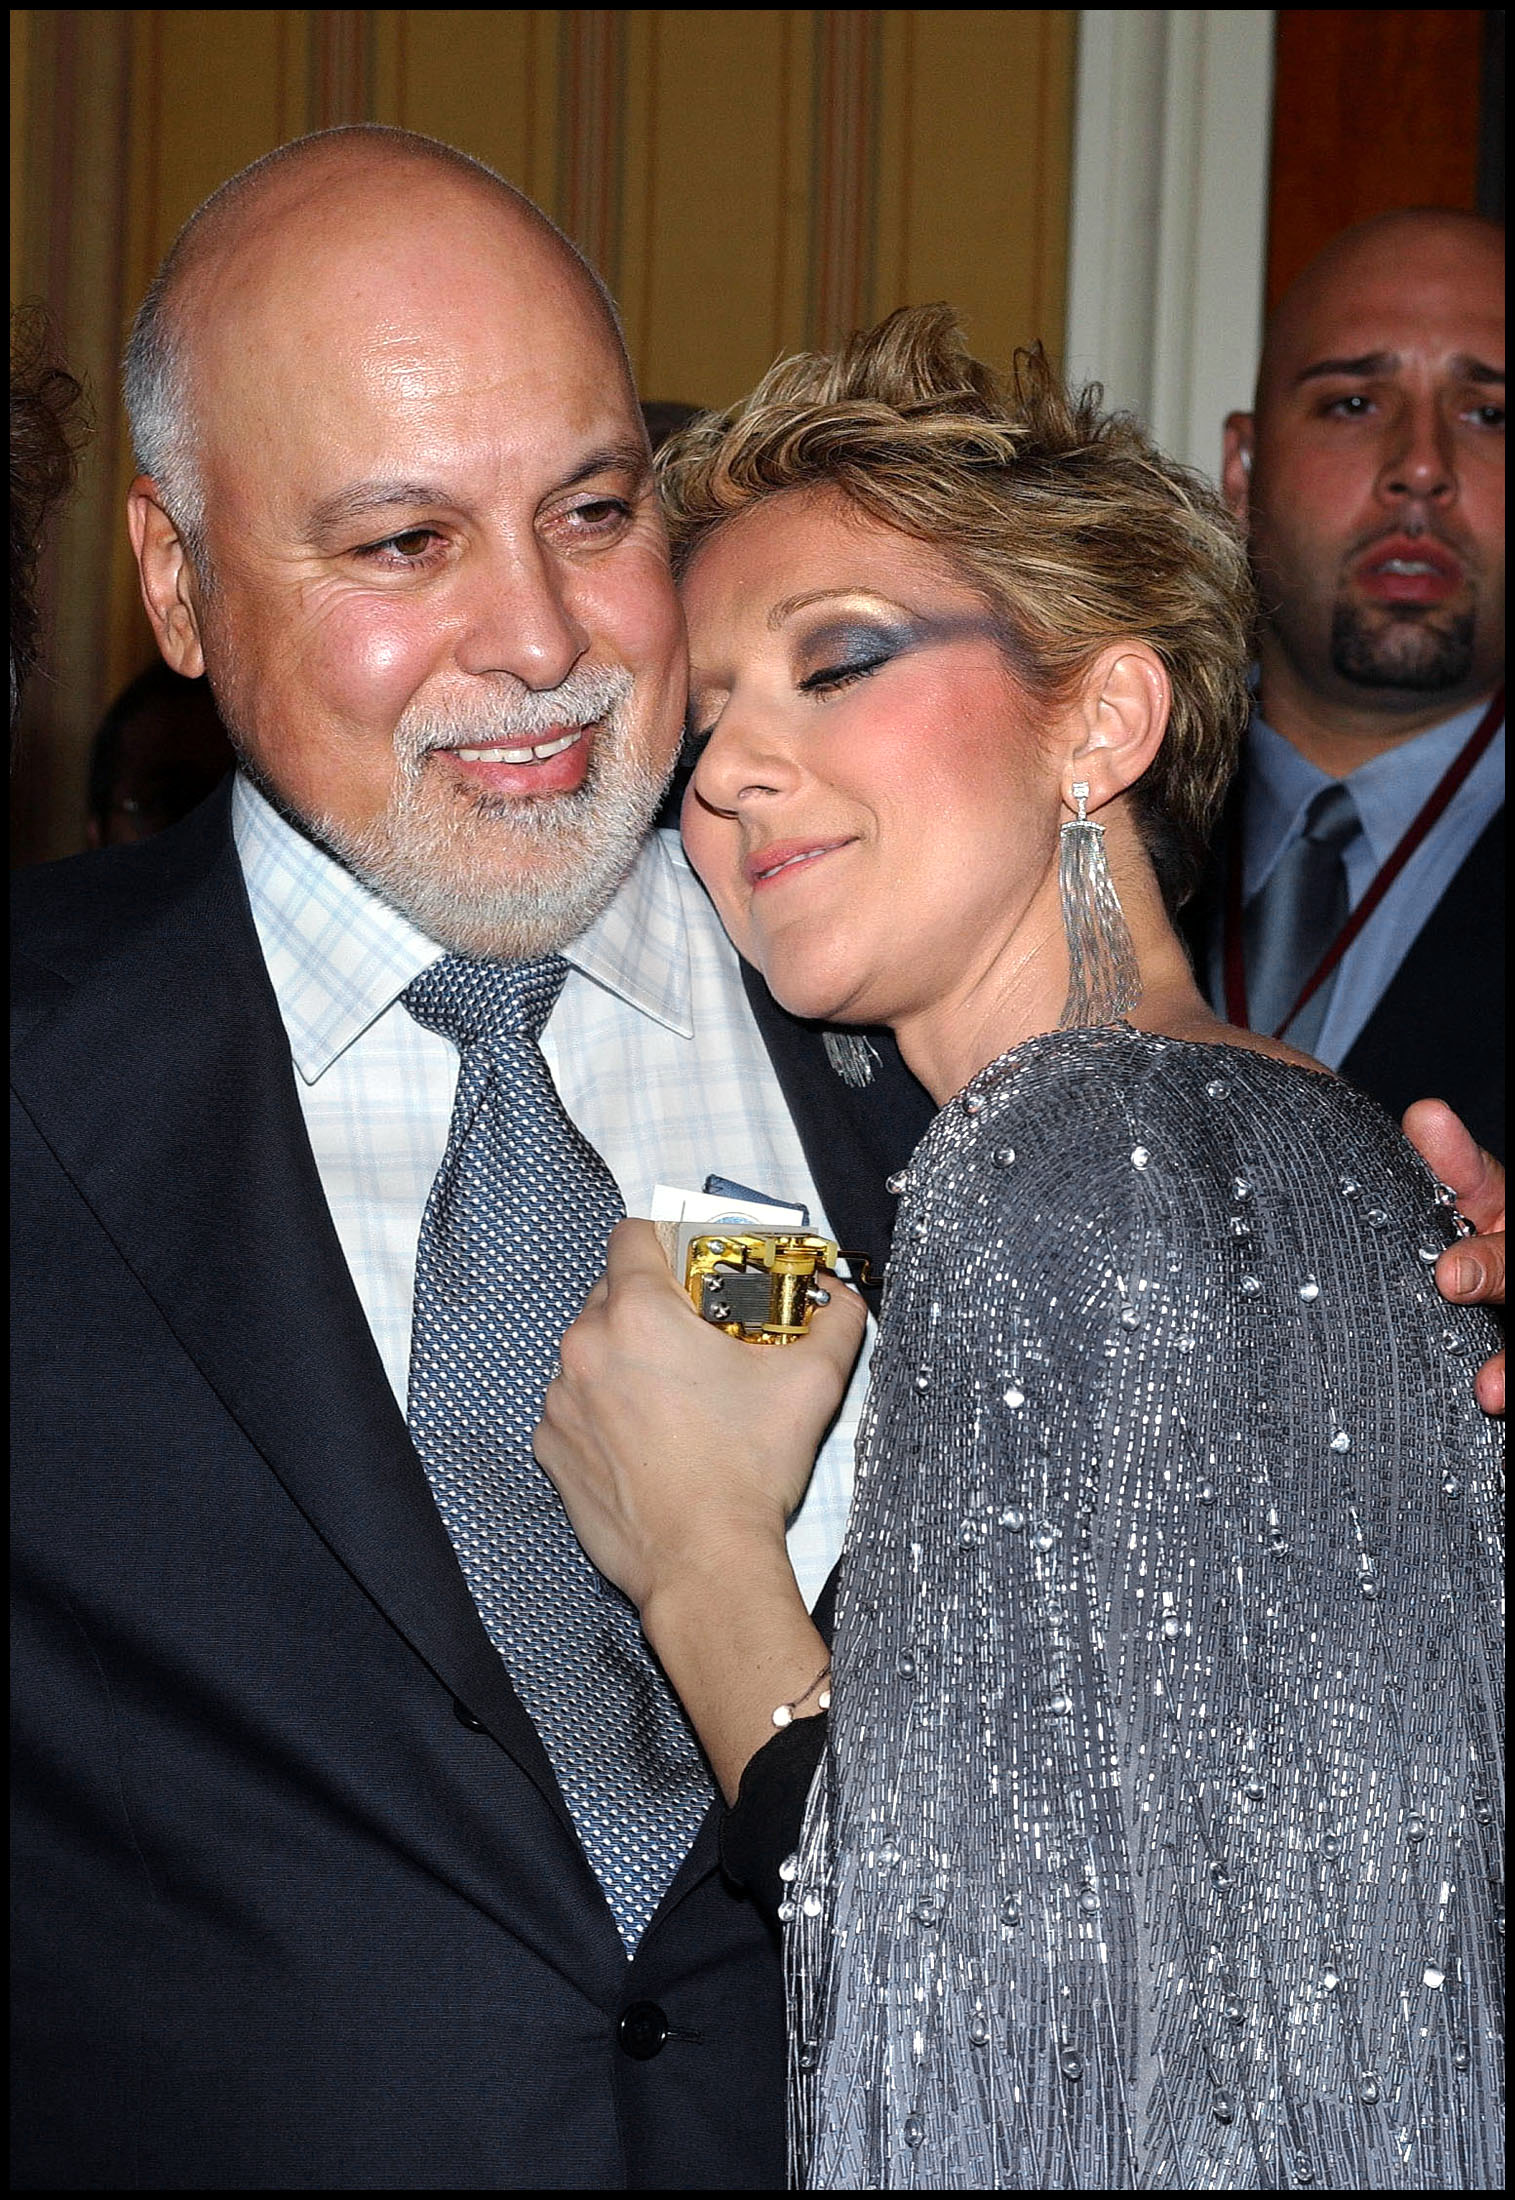 LA CANTANTE CELINE DION CON SU MARIDO RENE ANGELIL EN LA RUEDA DE PRENSA DE PRESENTACION DE SU NUEVO ESPECTACULO Lionel Hahn / ABACA 43921 - 4 / ©KORPA 25 / 03 / 03 . LAS VEGAS  *** Local Caption *** © Lionel Hahn/ABACA. 43921-4. Las Vegas-NV-USA. 03/25/03. Rene Angelil and Celine Dion posing at the press conference following the premiere of Celine Dion's new show, A New Day at The Colosseum at Caesars Palace.